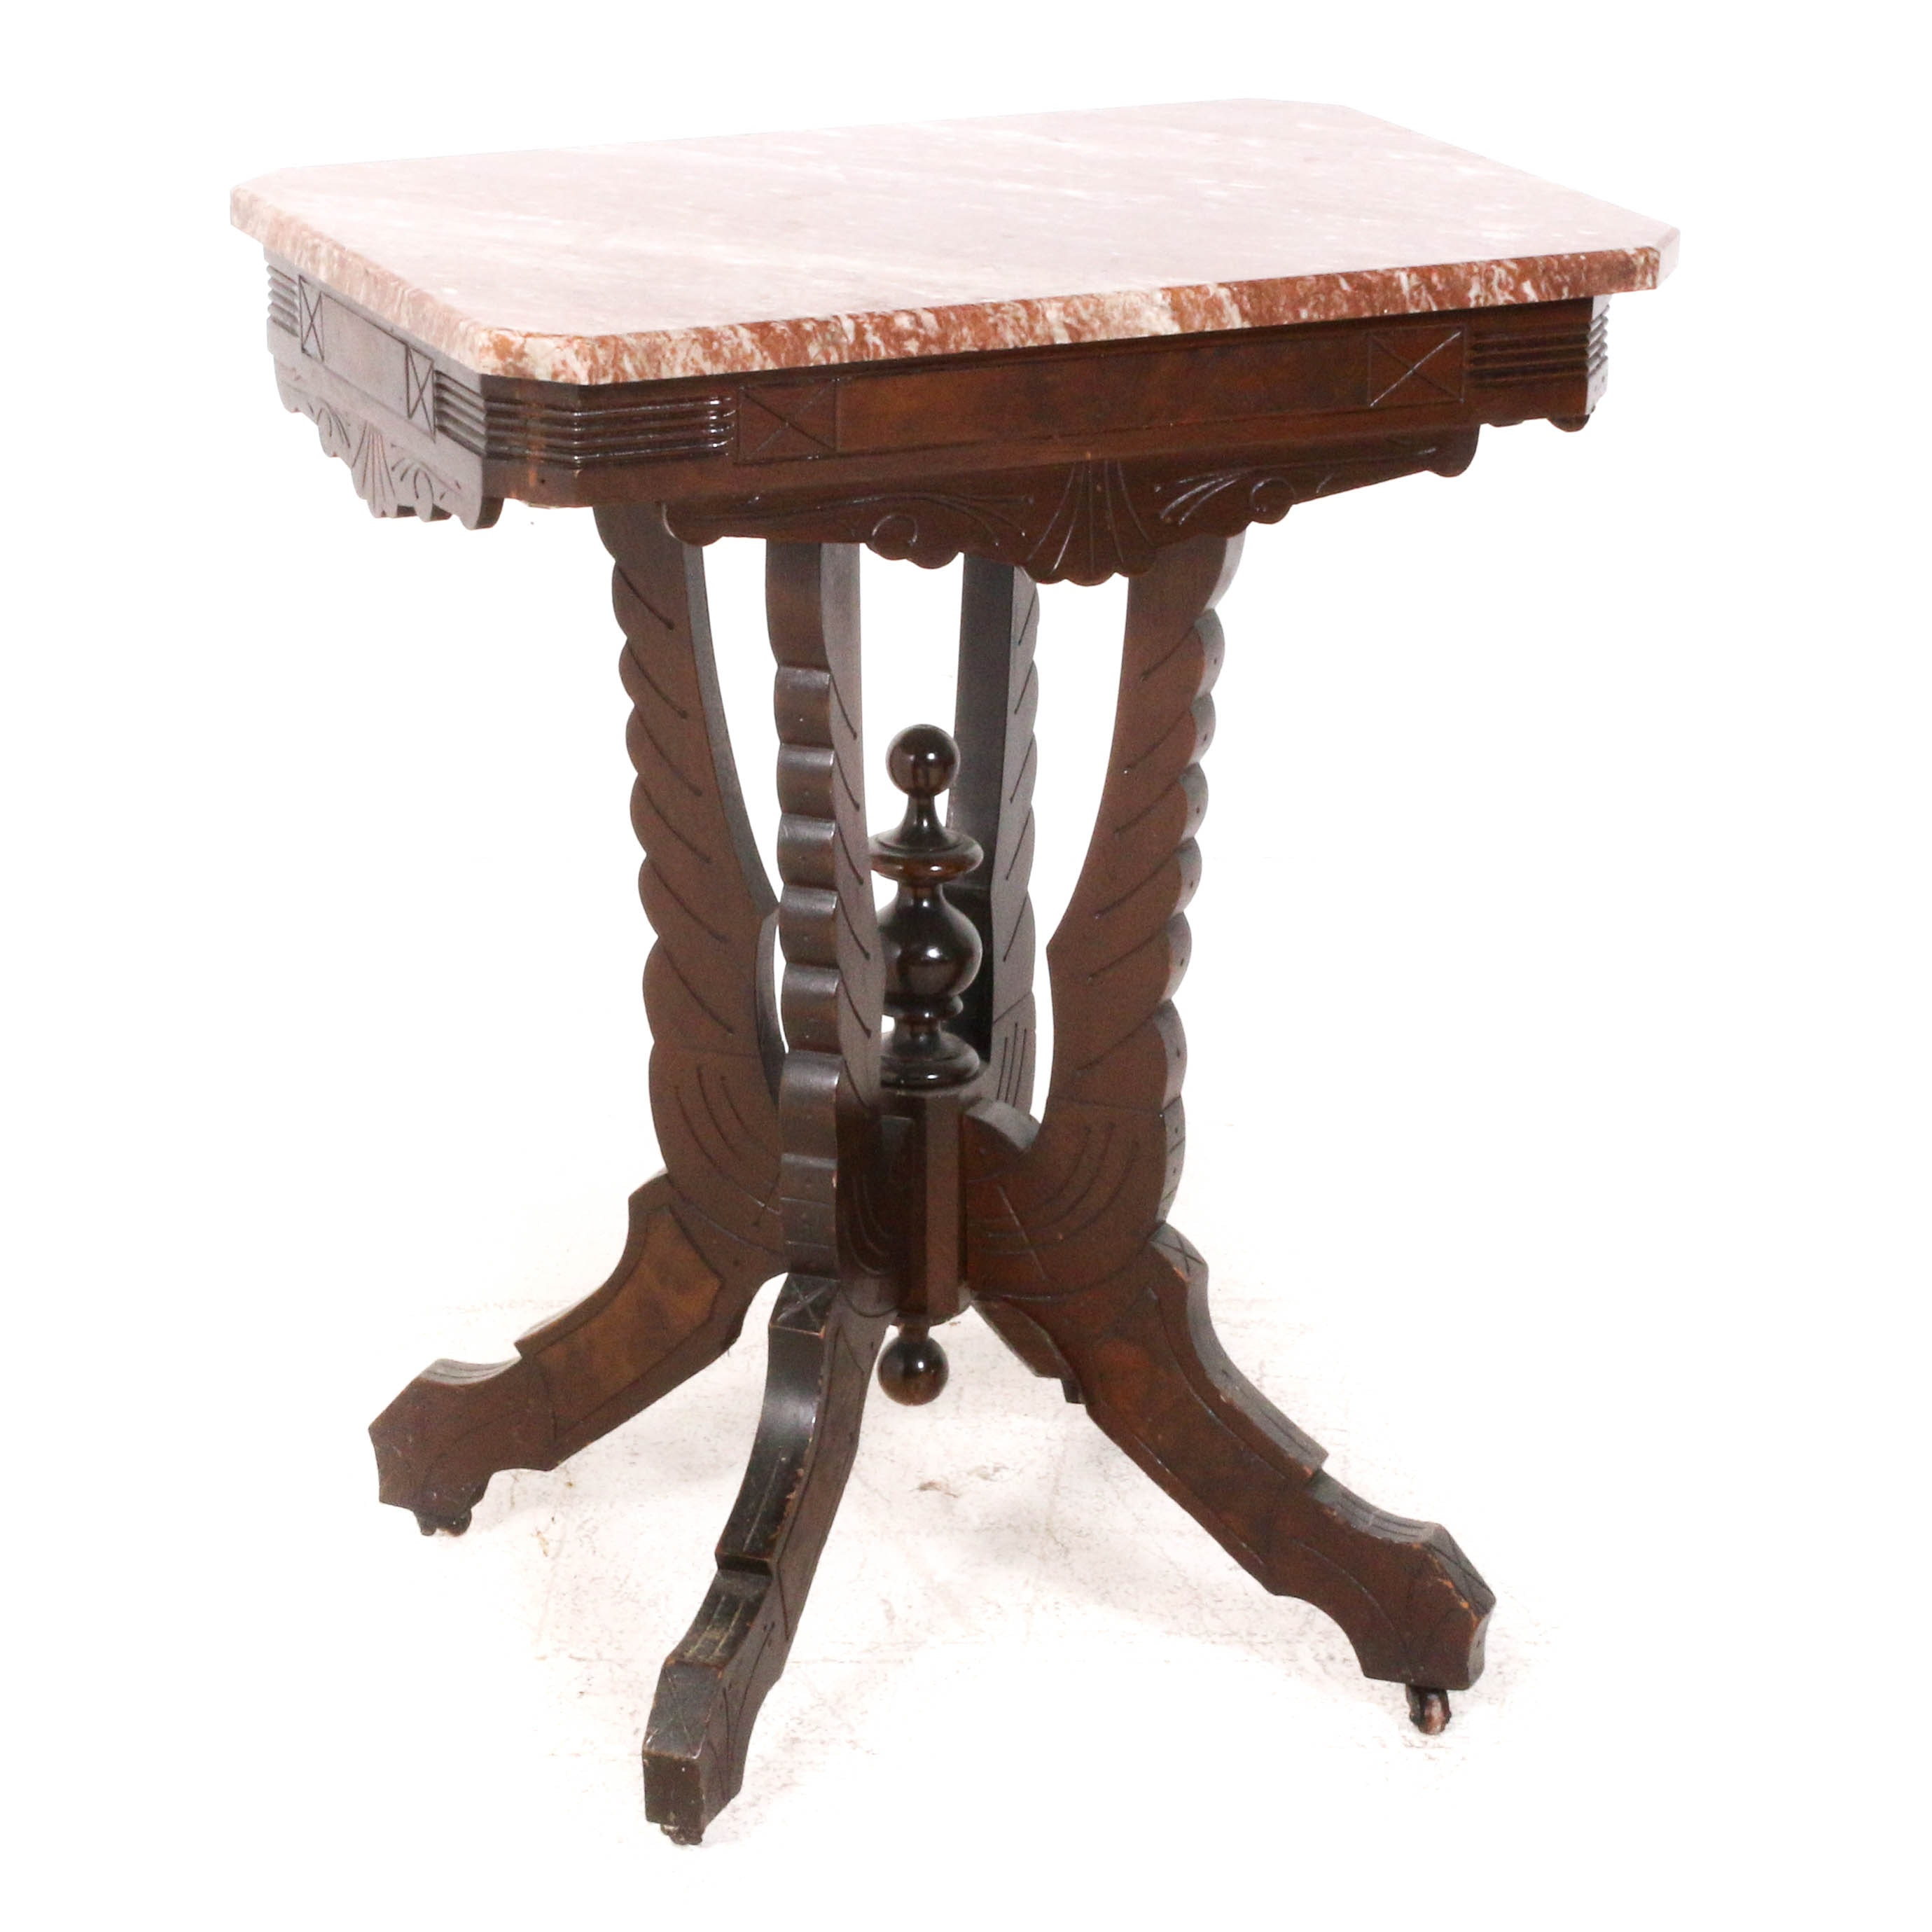 Victorian Eastlake Marble-Top Table, 19th Century